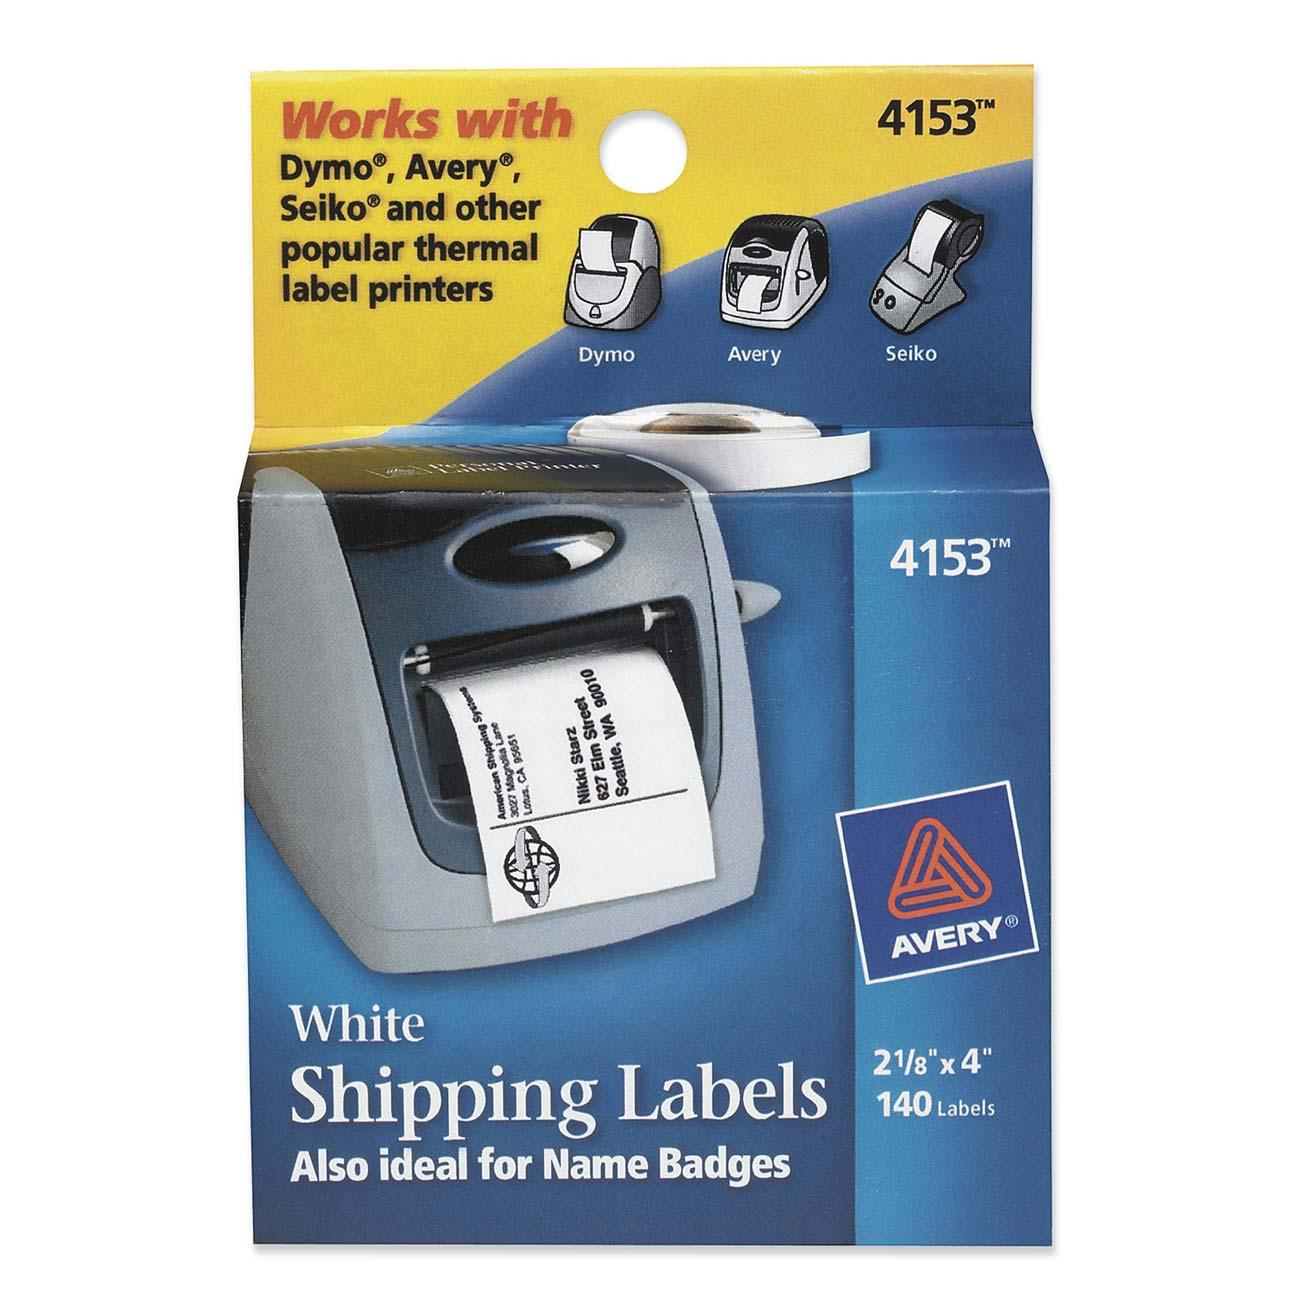 Custom Card Template avery label printer : Label Printer Mailing Label Avery Dennison 4153 AVE4153 Labels